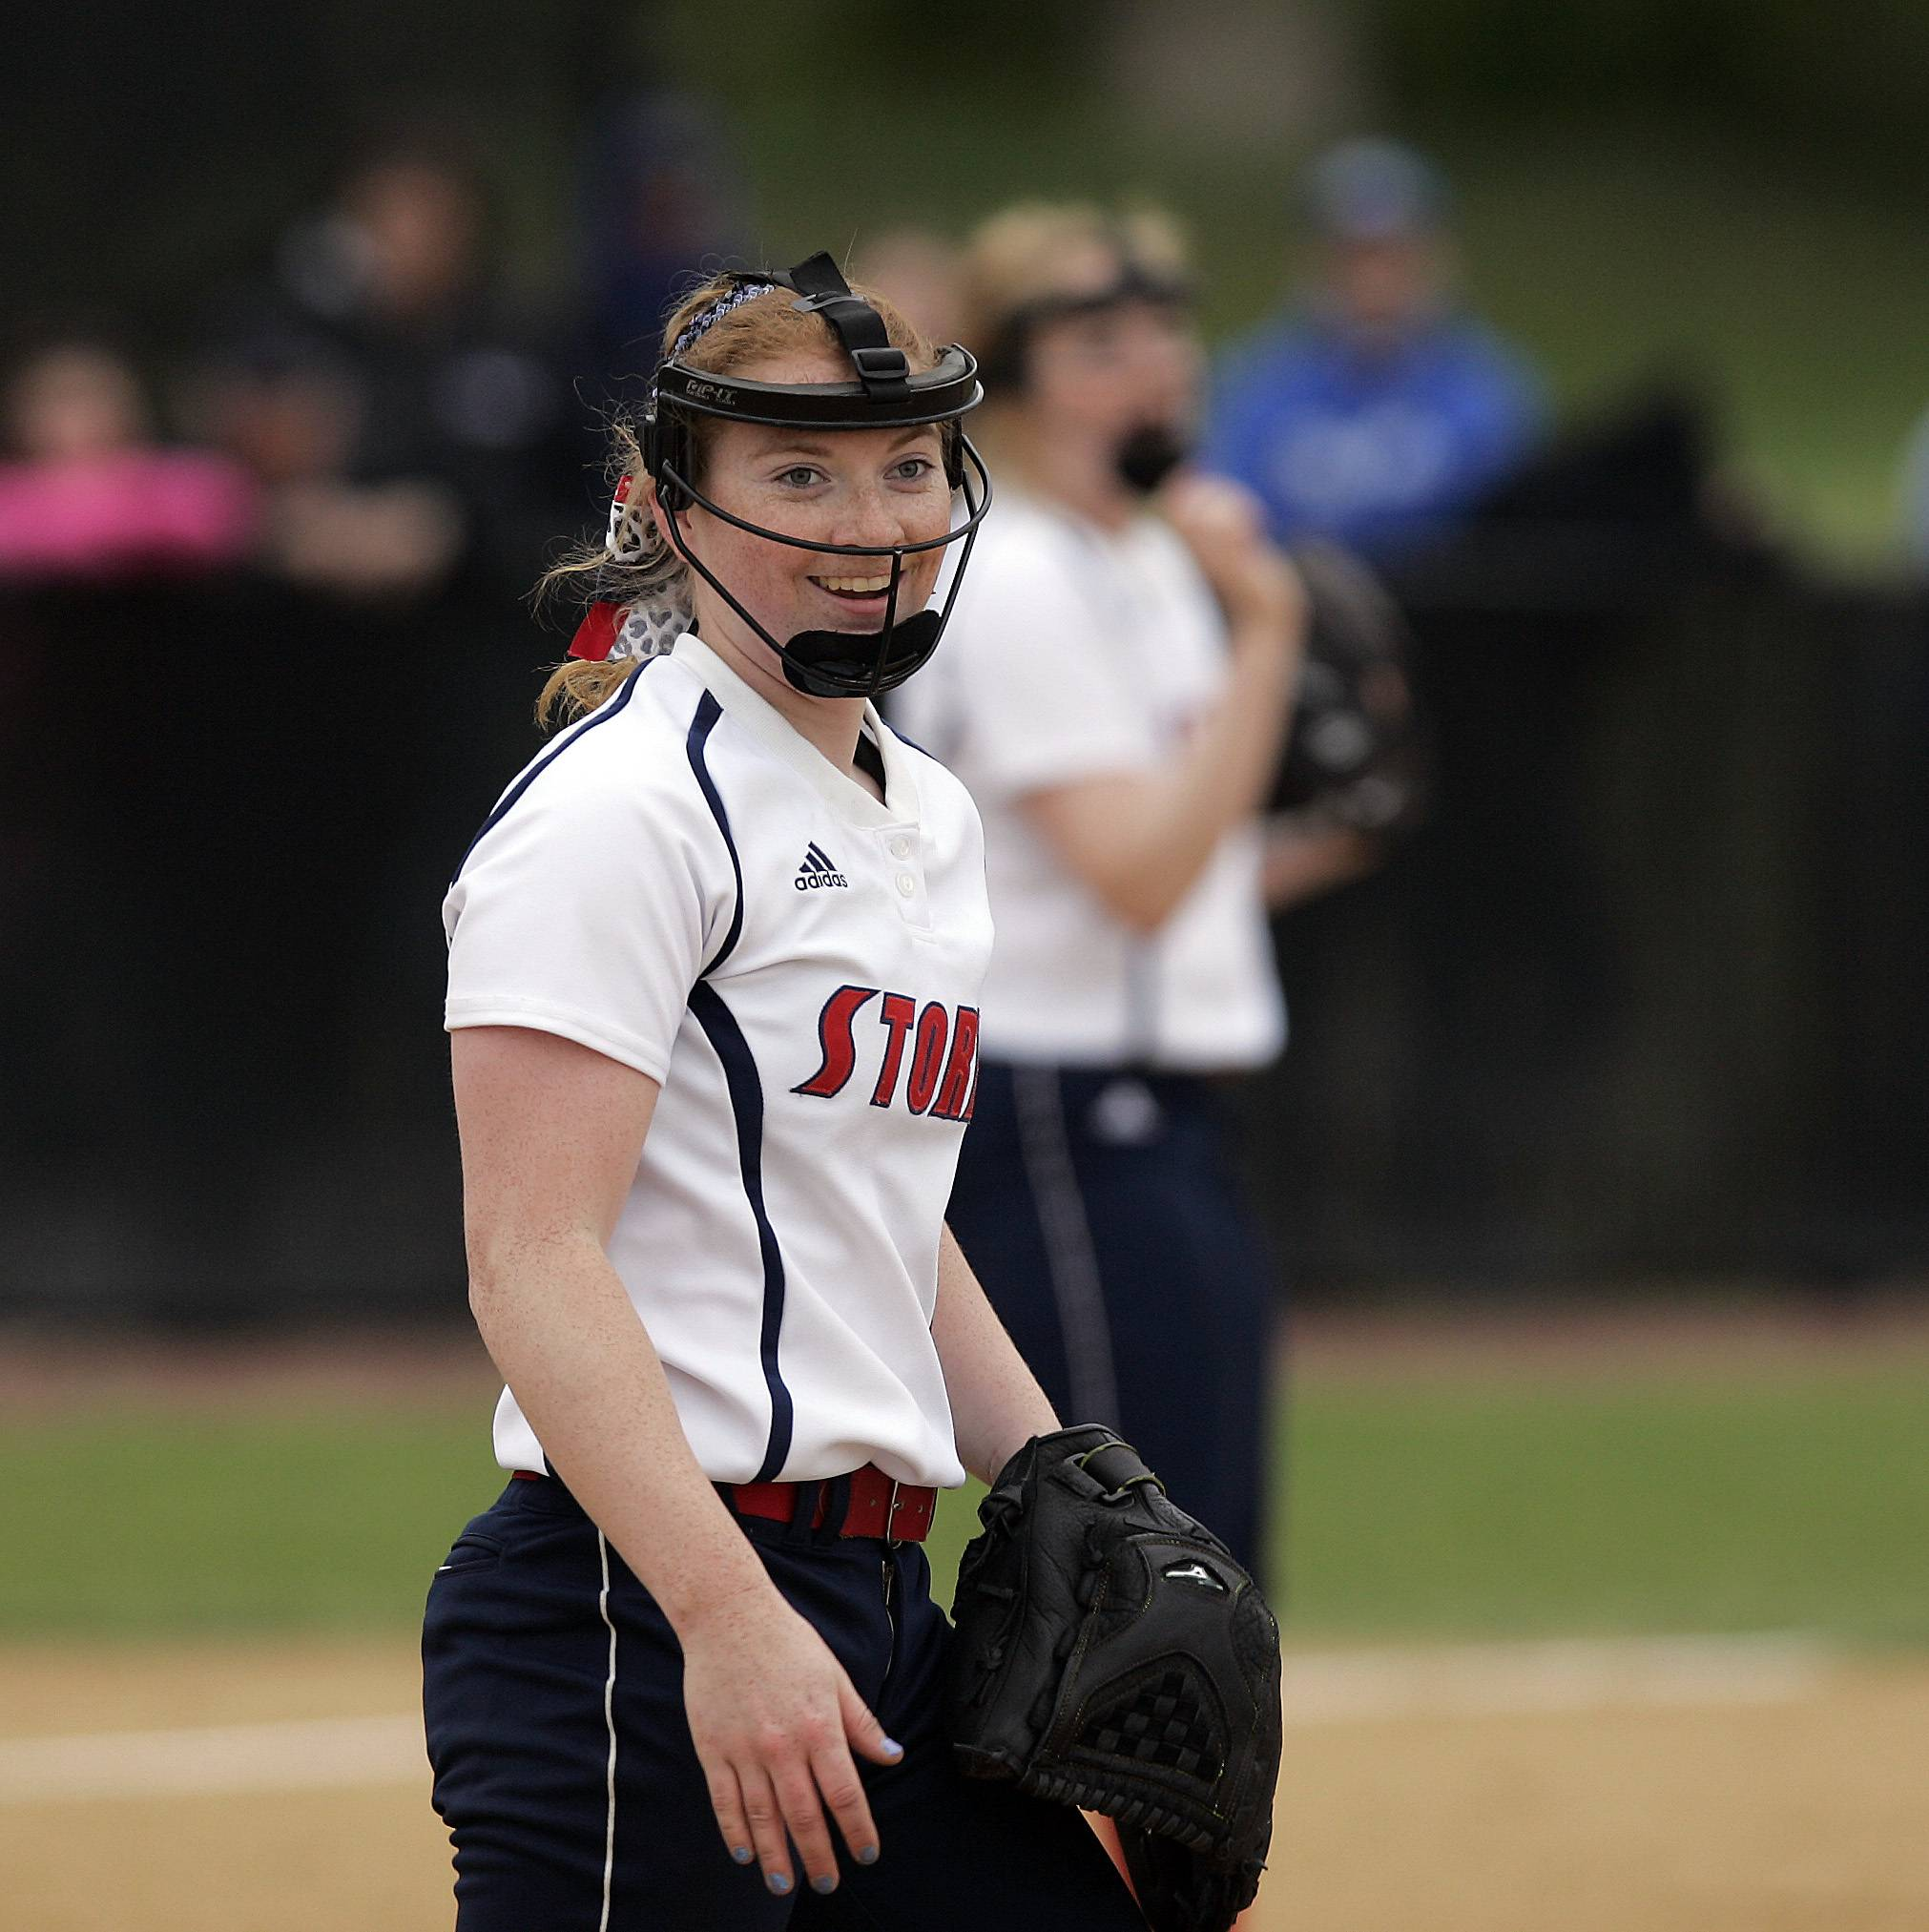 South Elgin senior Paige Allen was a part of a regional title team last season.